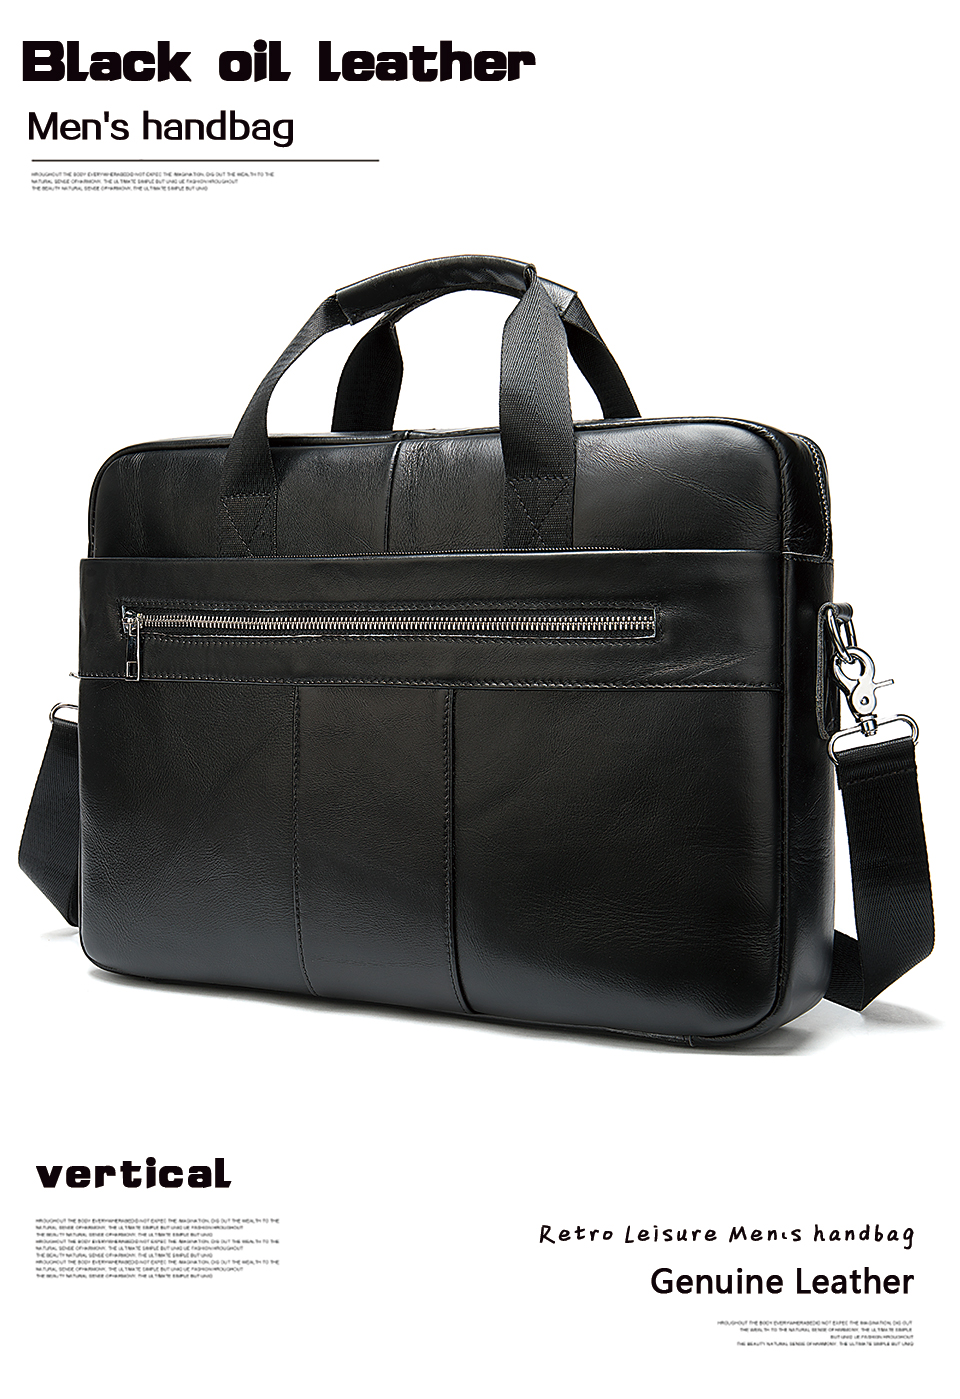 H3309b4c712cb45e0944d47991711169bd WESTAL Men's Briefcase Men's Bag Genuine Leather Laptop Bag Leather Computer/Office Bags for Men Document Briefcases Totes Bags